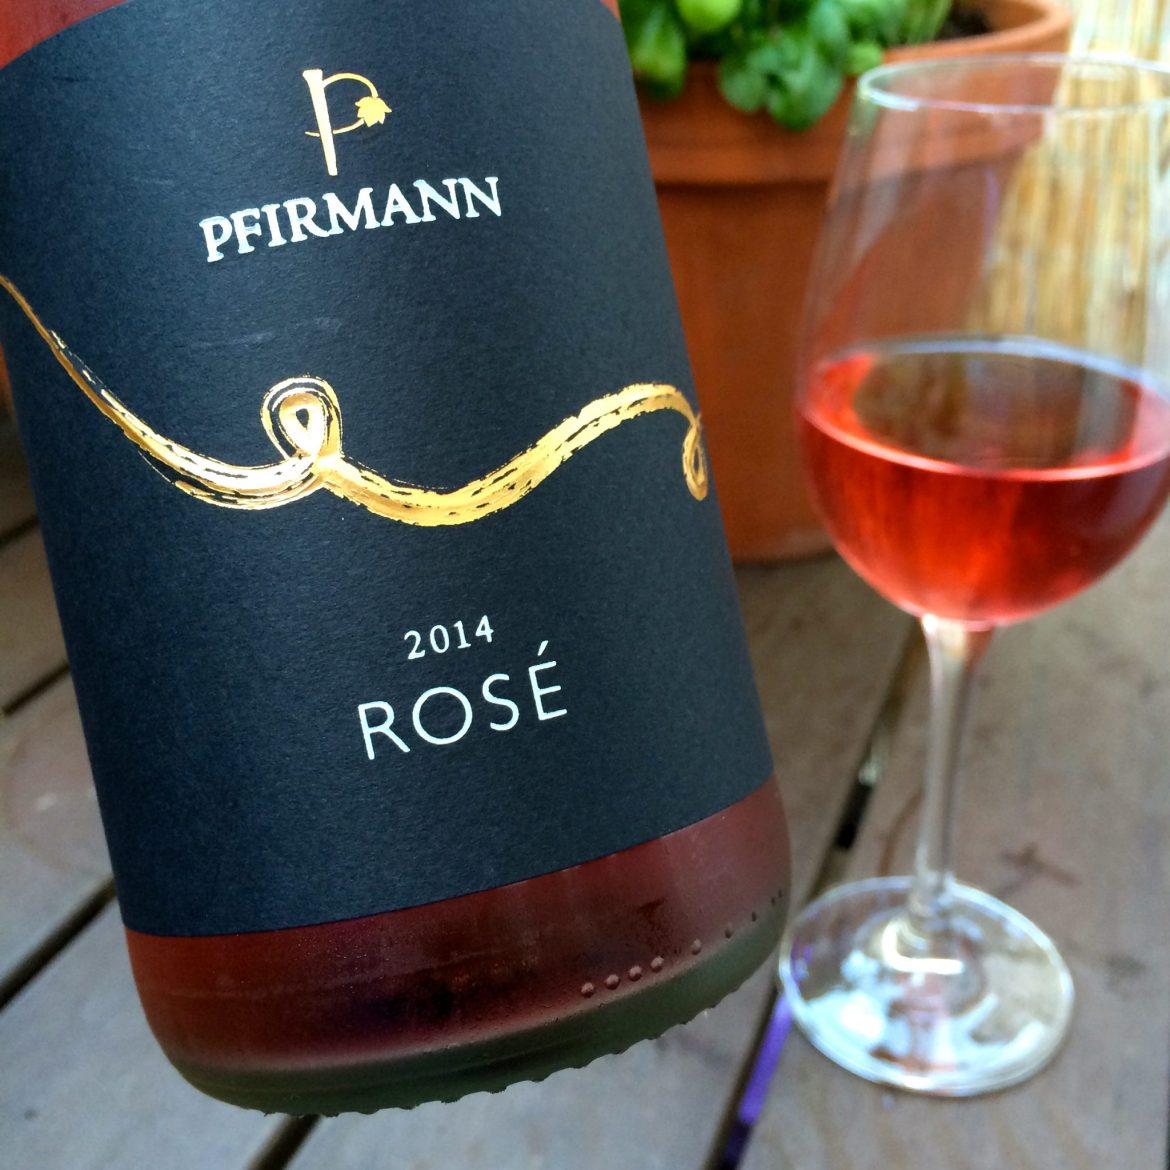 A bottle and glass of German rosé wine